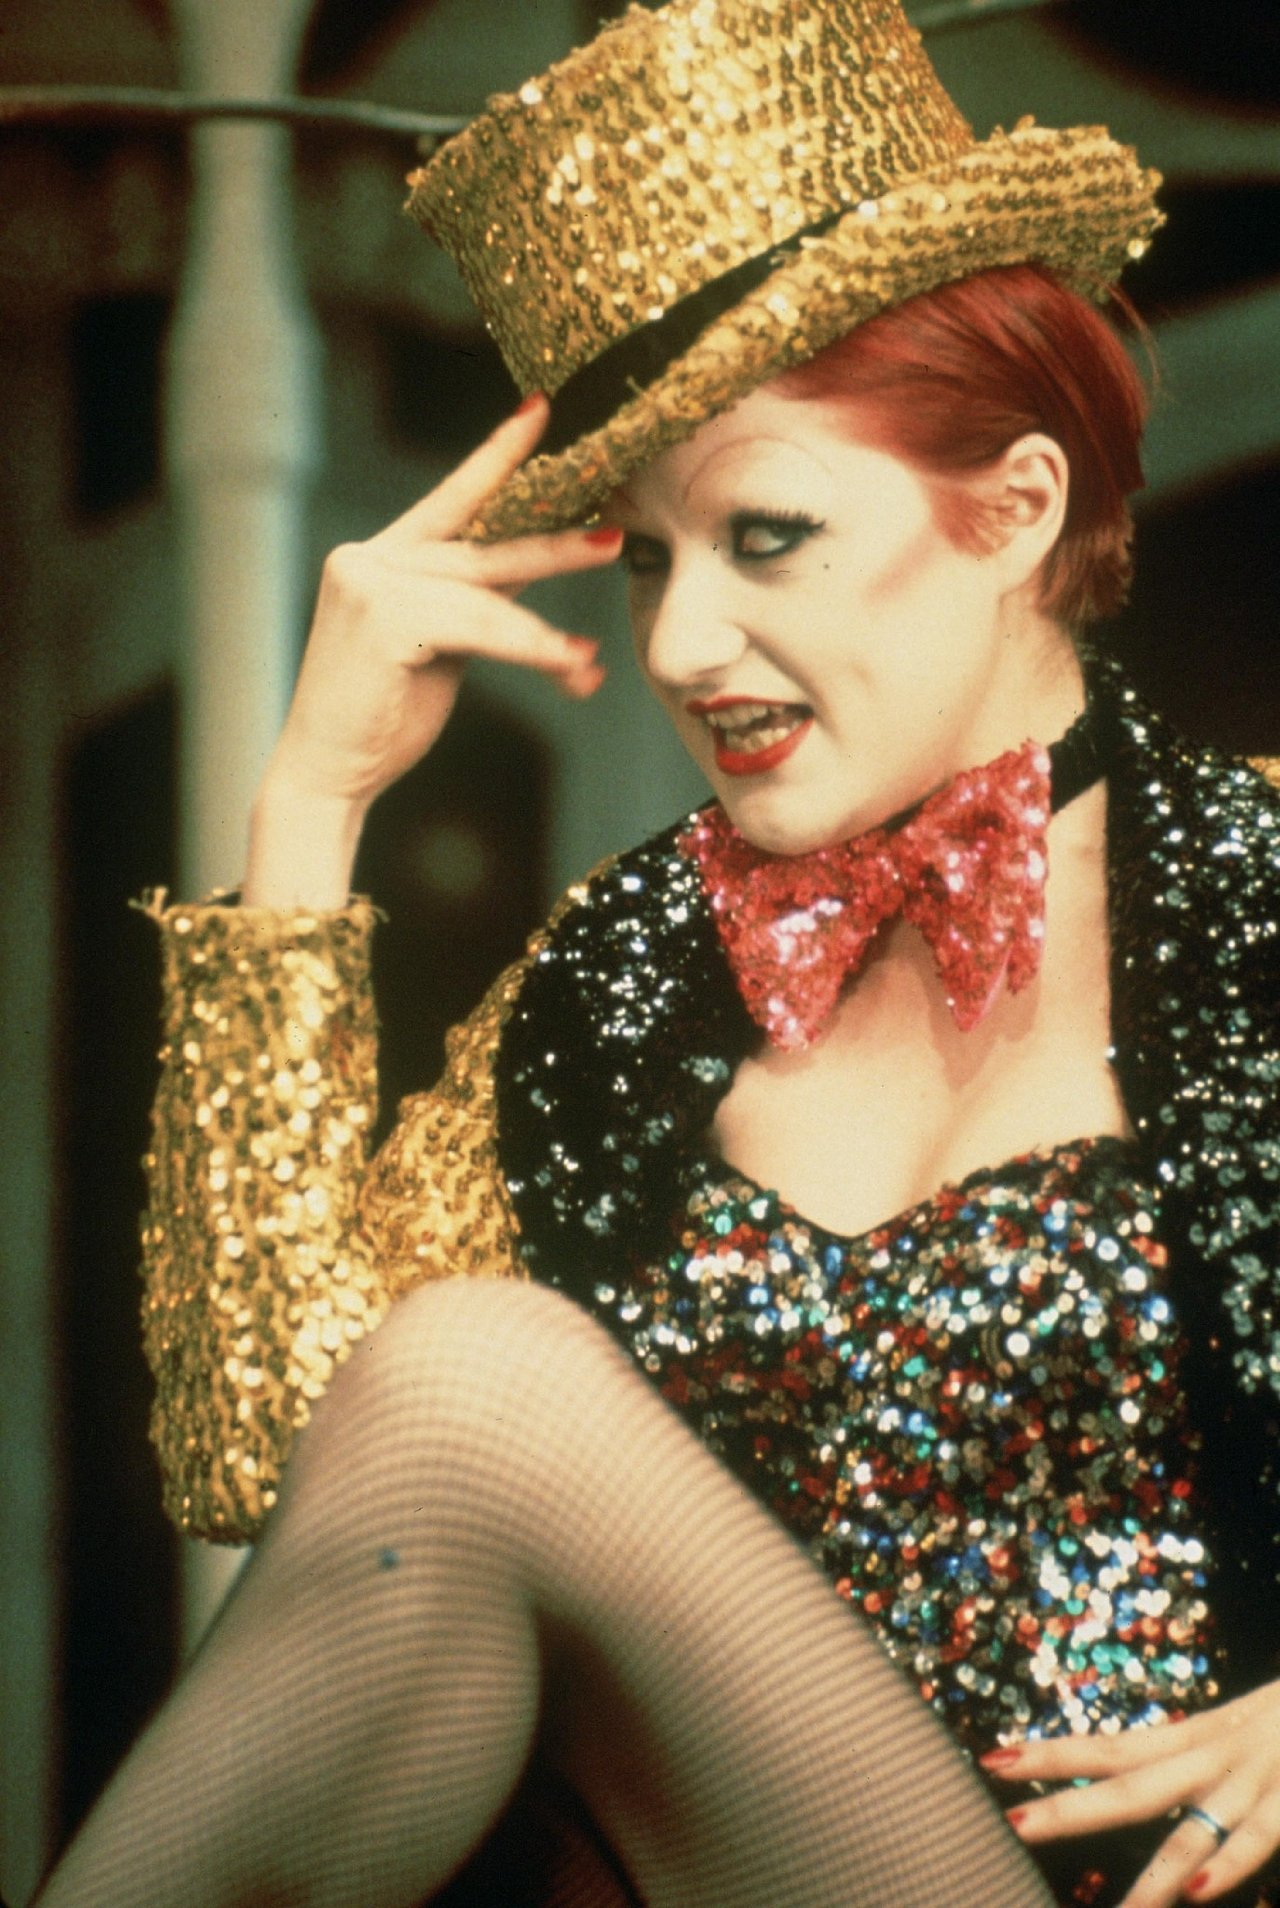 The rocky horror picture show: lets do the time warp again: annaleigh ashford as columbia in the rocky horror